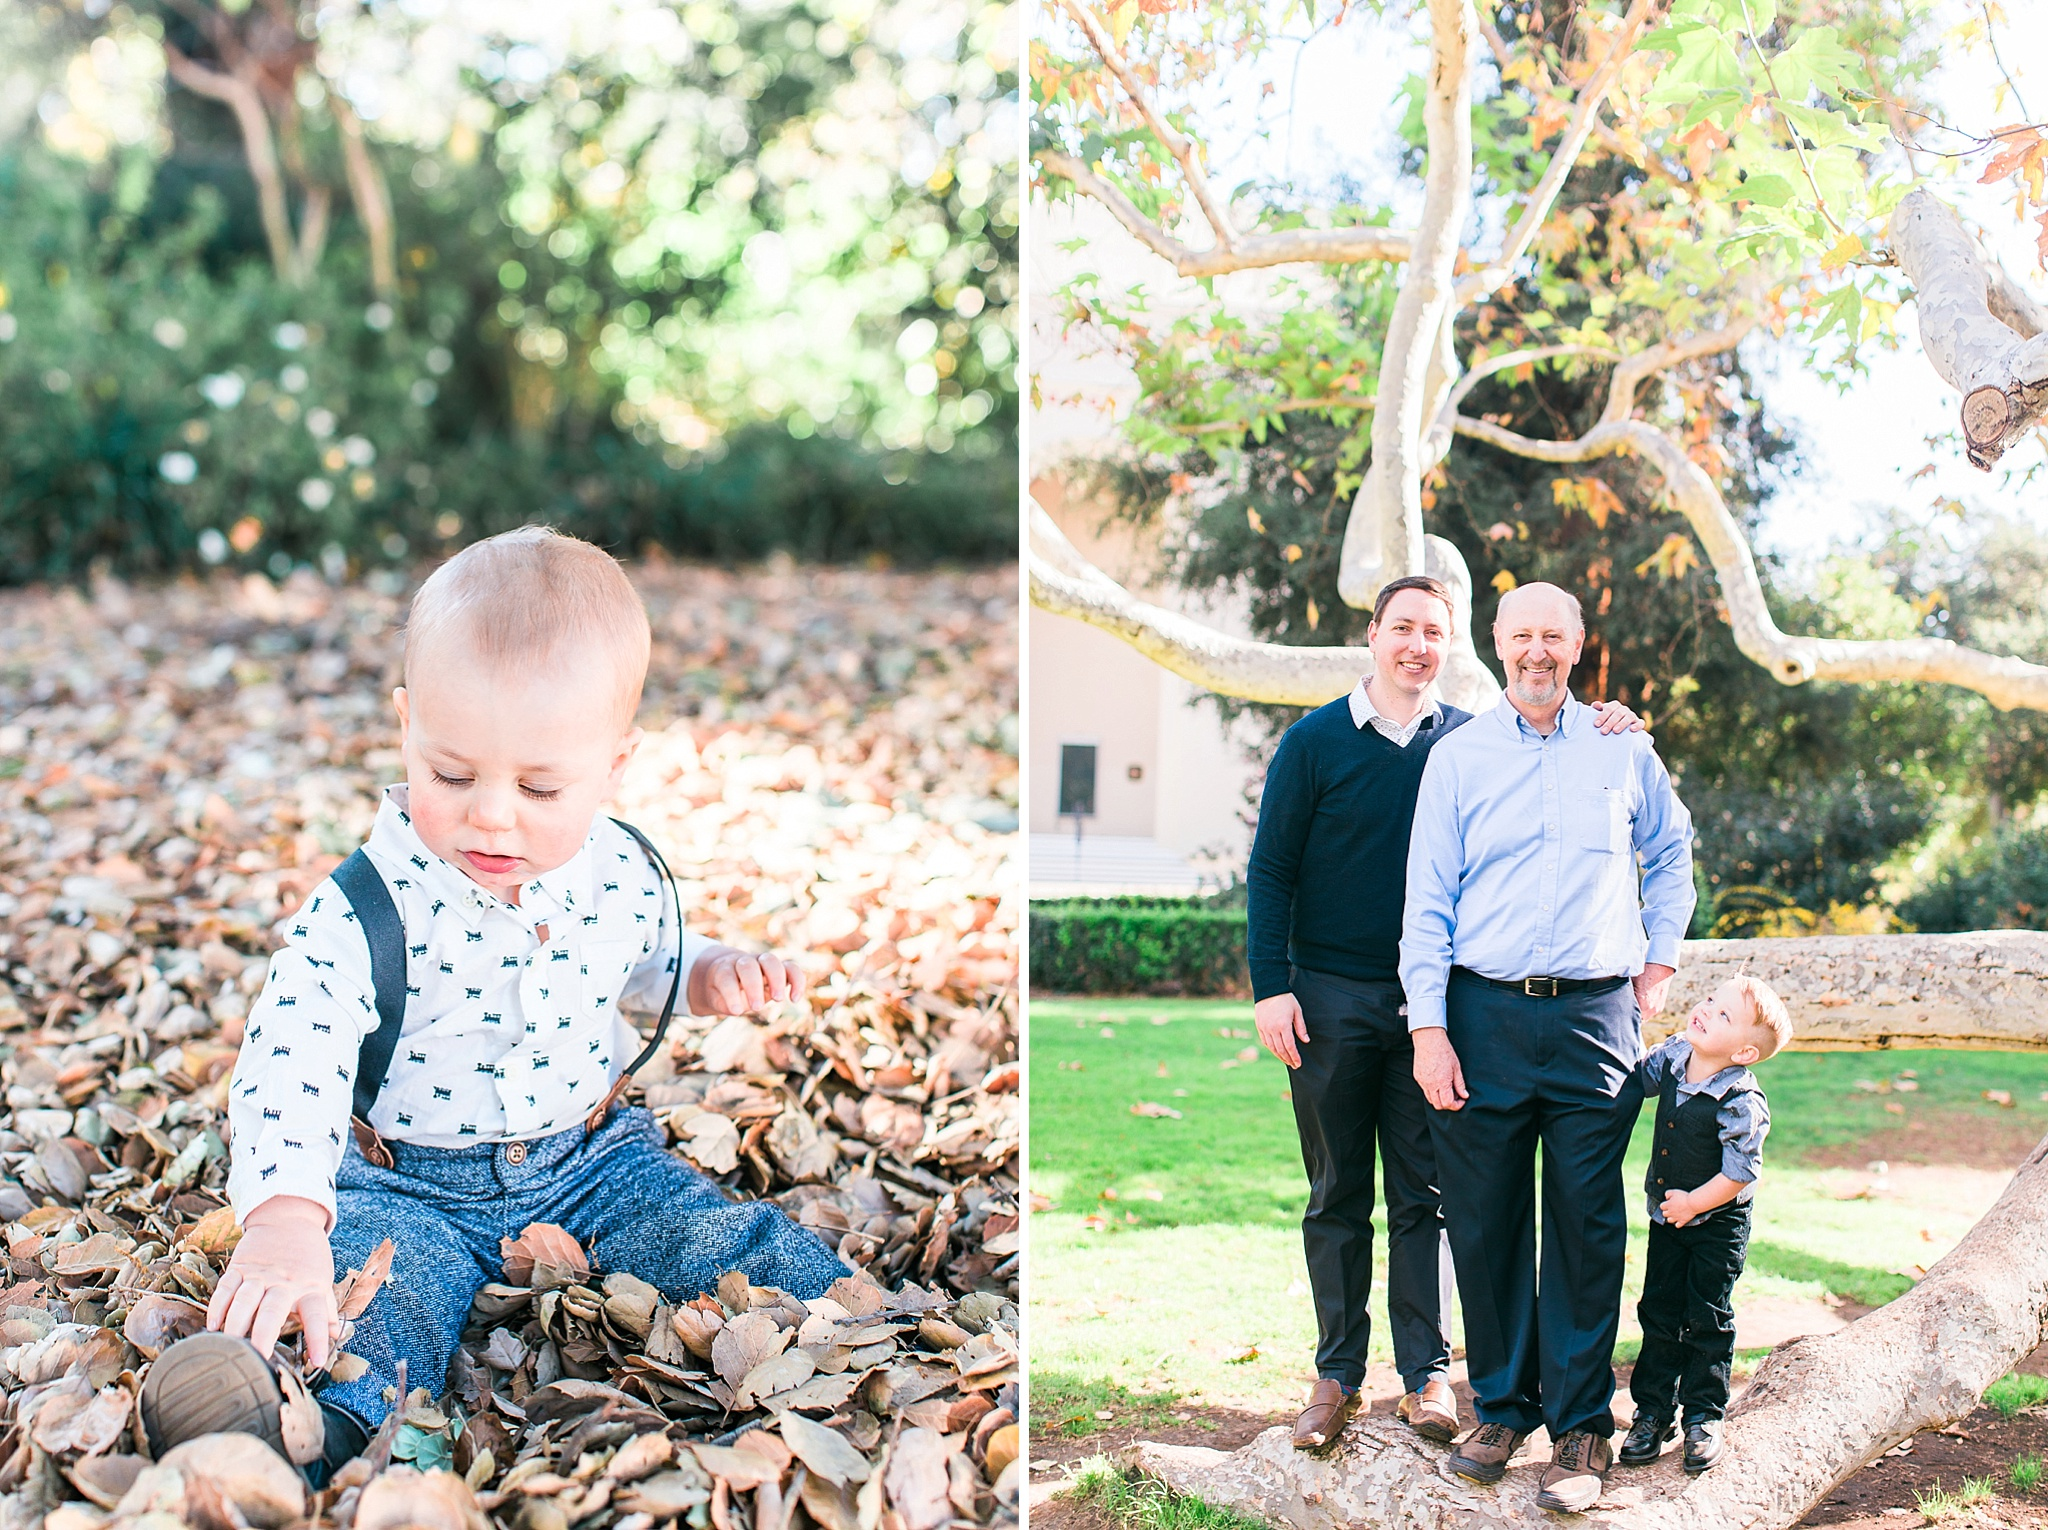 Claremont-Colleges-Family-Photos-19_WEB.jpg